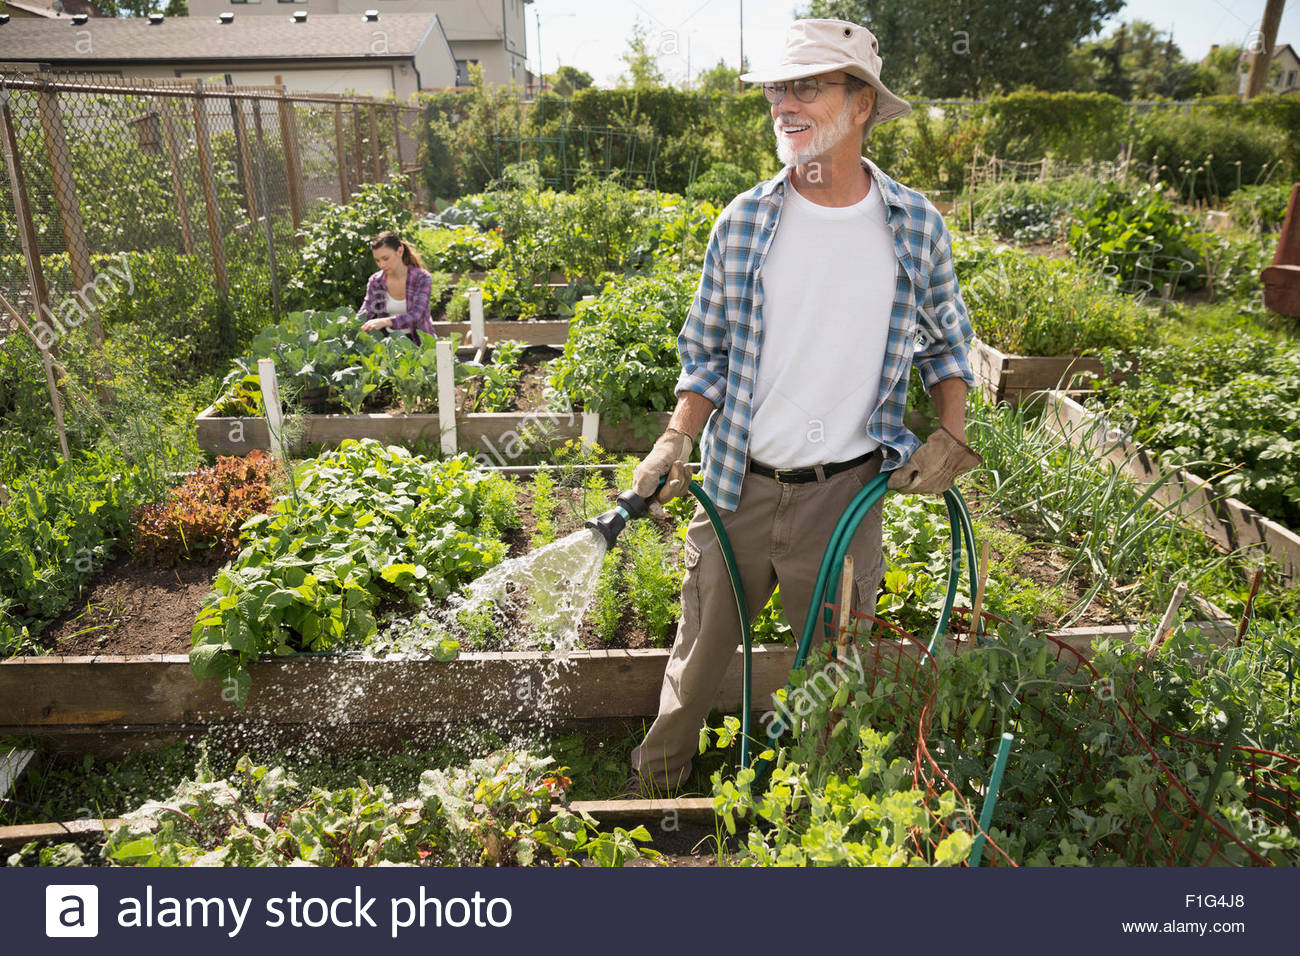 Exceptionnel Man Watering Vegetable Garden With Hose